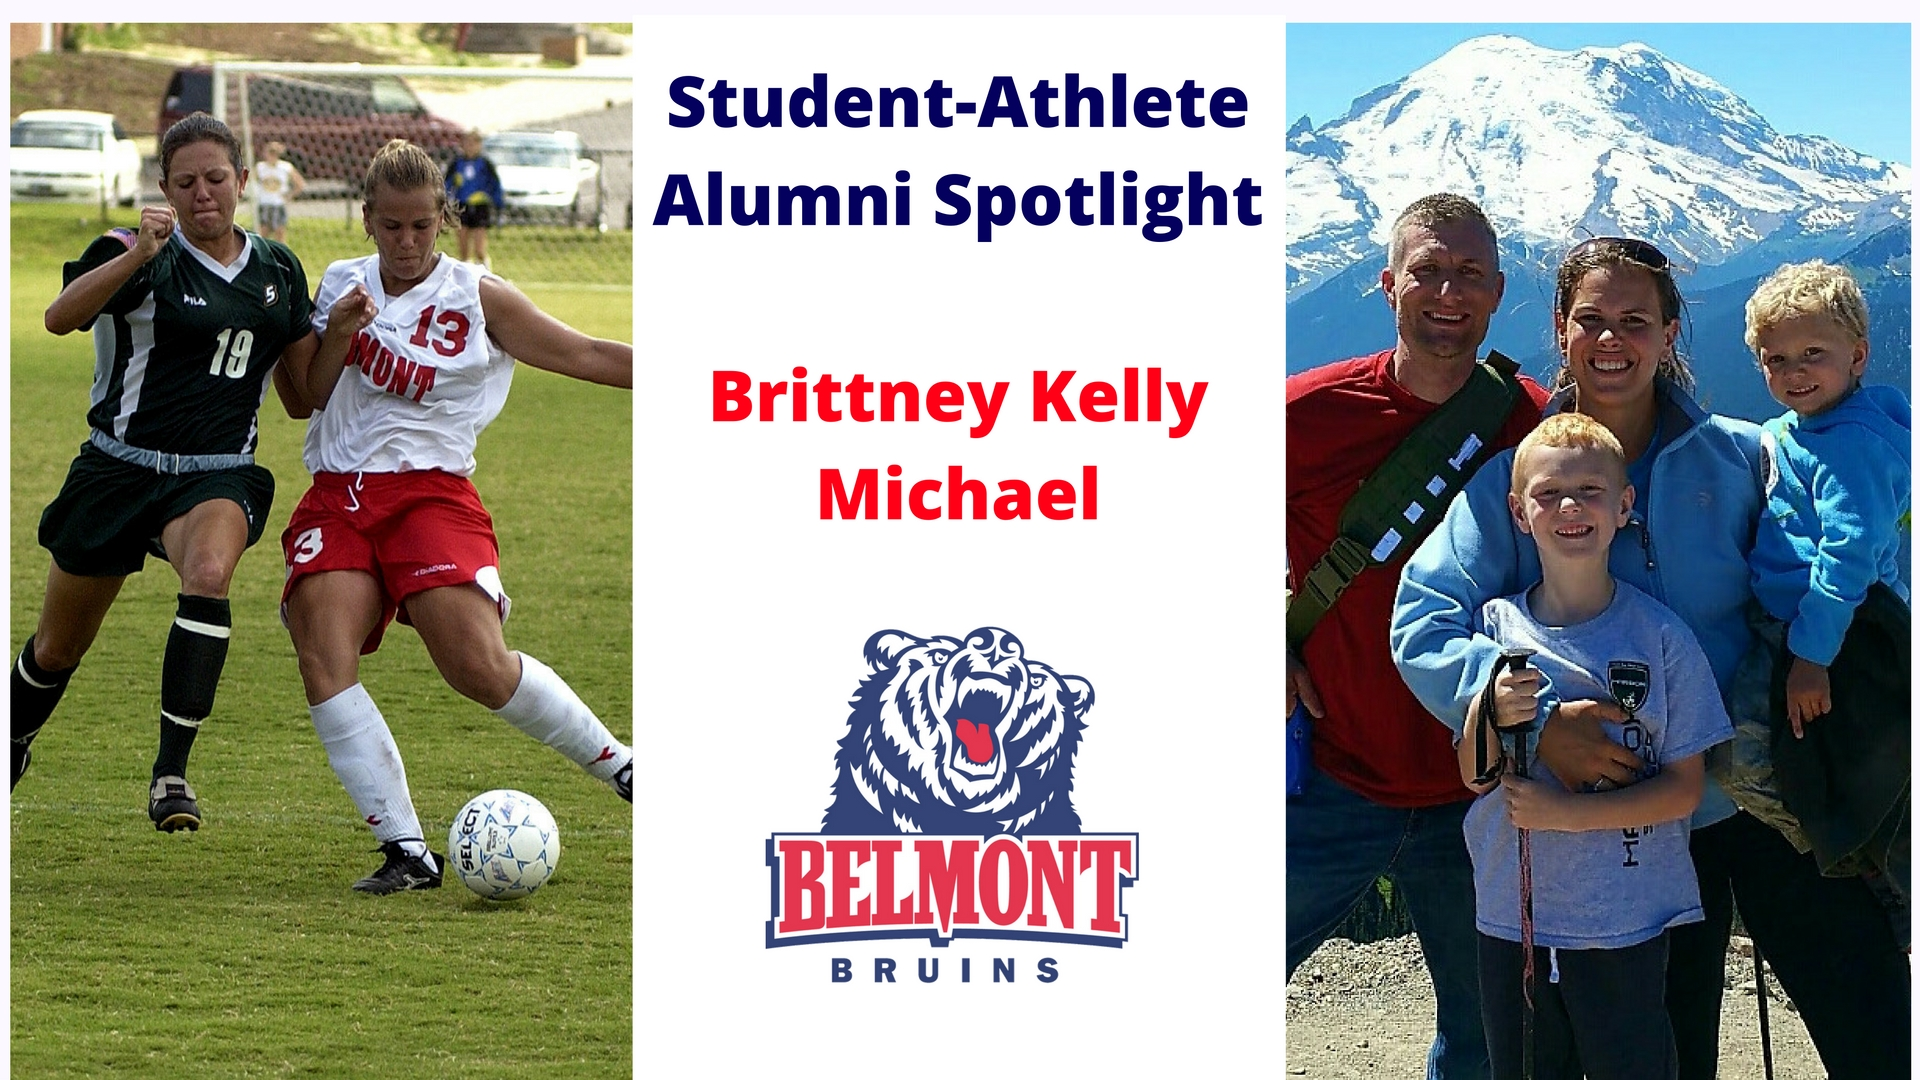 Student-Athlete Alumni Spotlight - Brittney Kelly Michael